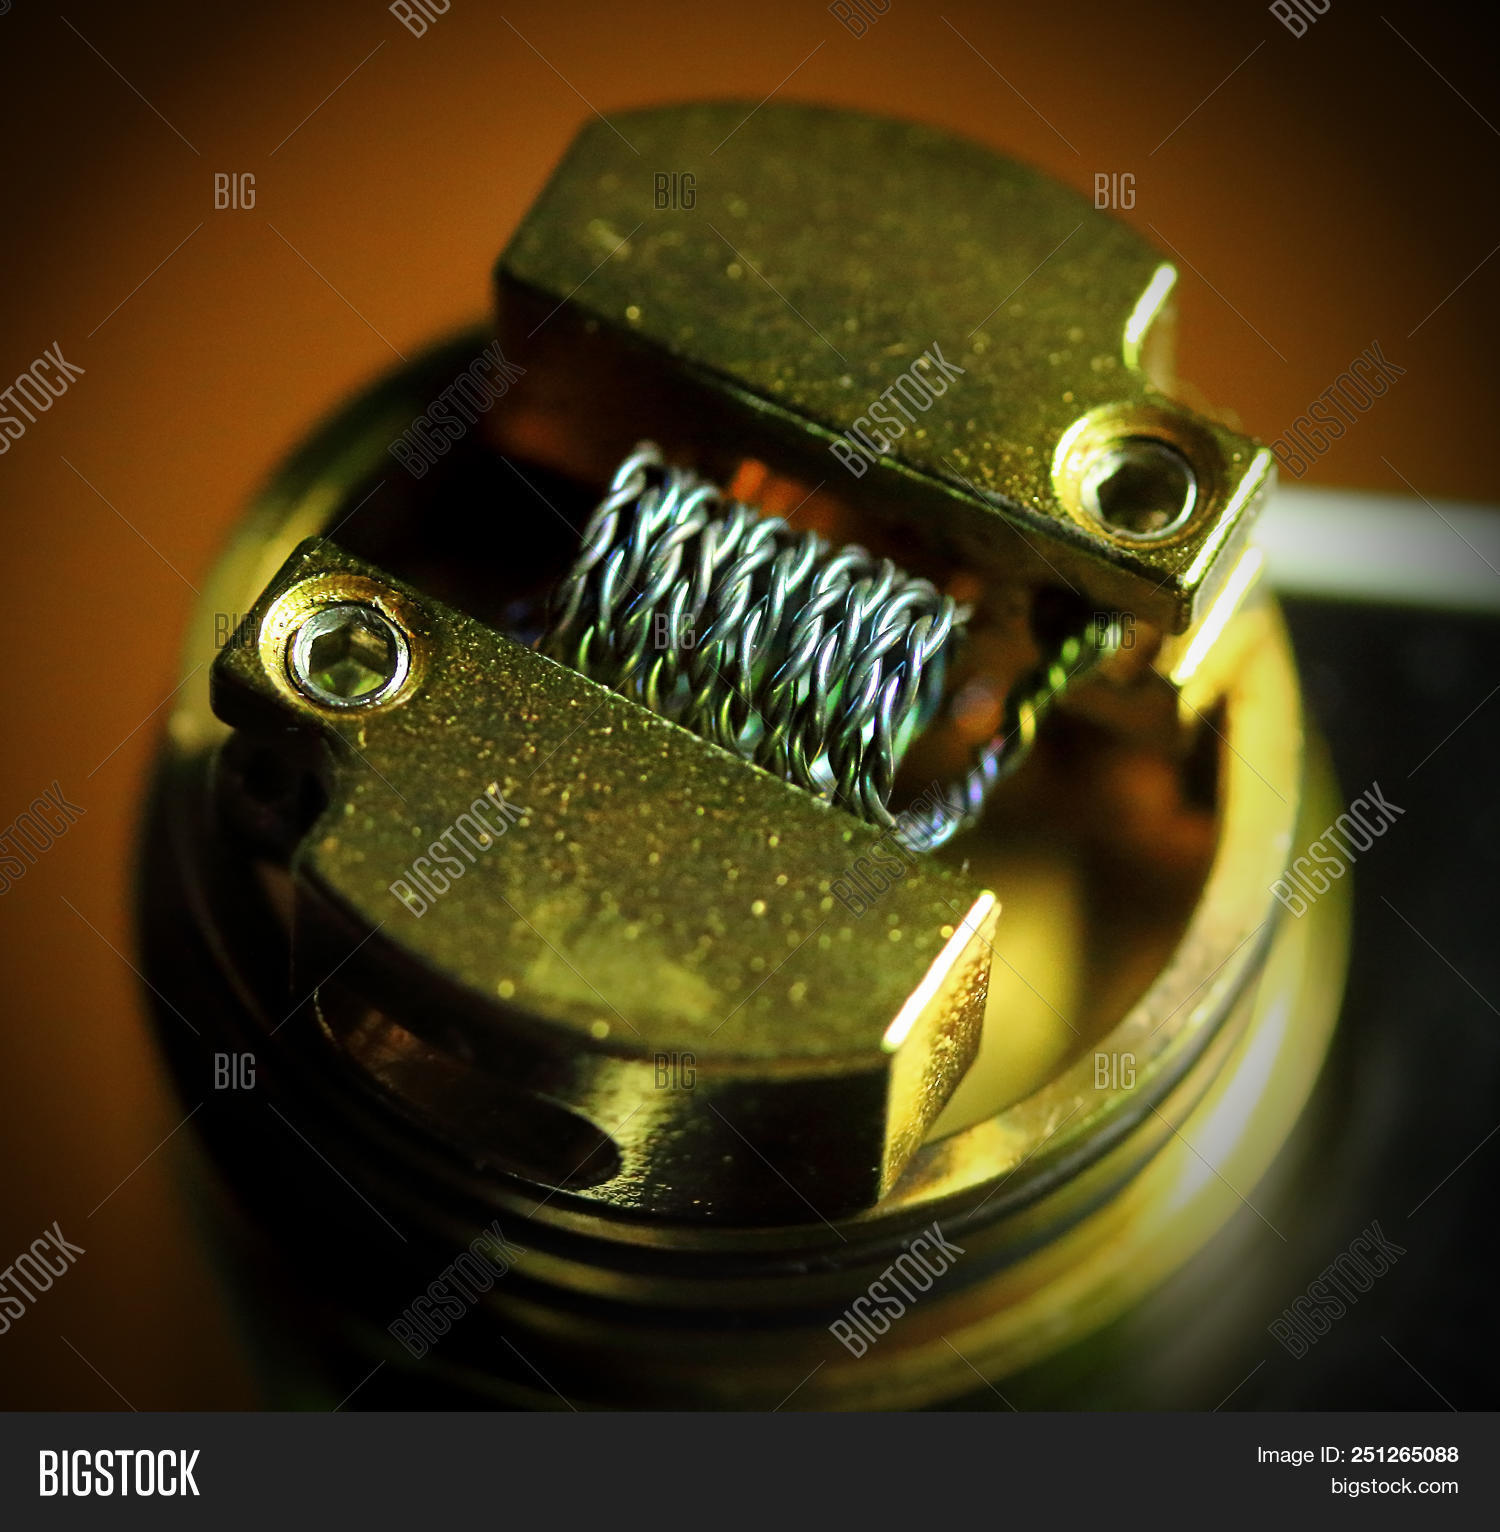 Nichrome Coil Image Photo Free Trial Bigstock